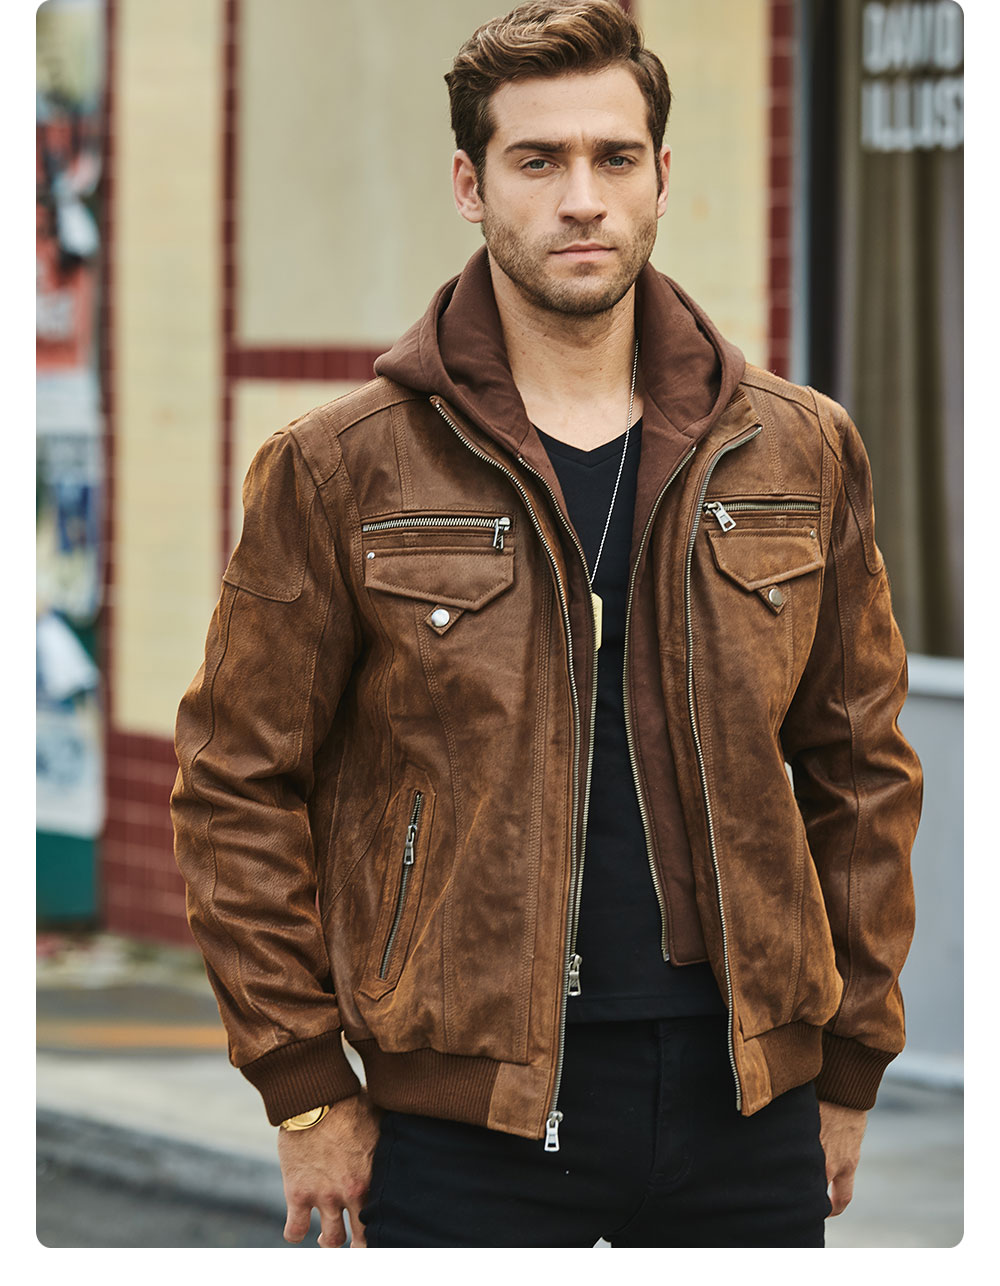 Hf110efd3c7e942b1a607fcd79cd6658e1 FLAVOR New Men's Real Leather Jacket with Removable Hood Brown Jacket Genuine Leather Warm Coat For Men